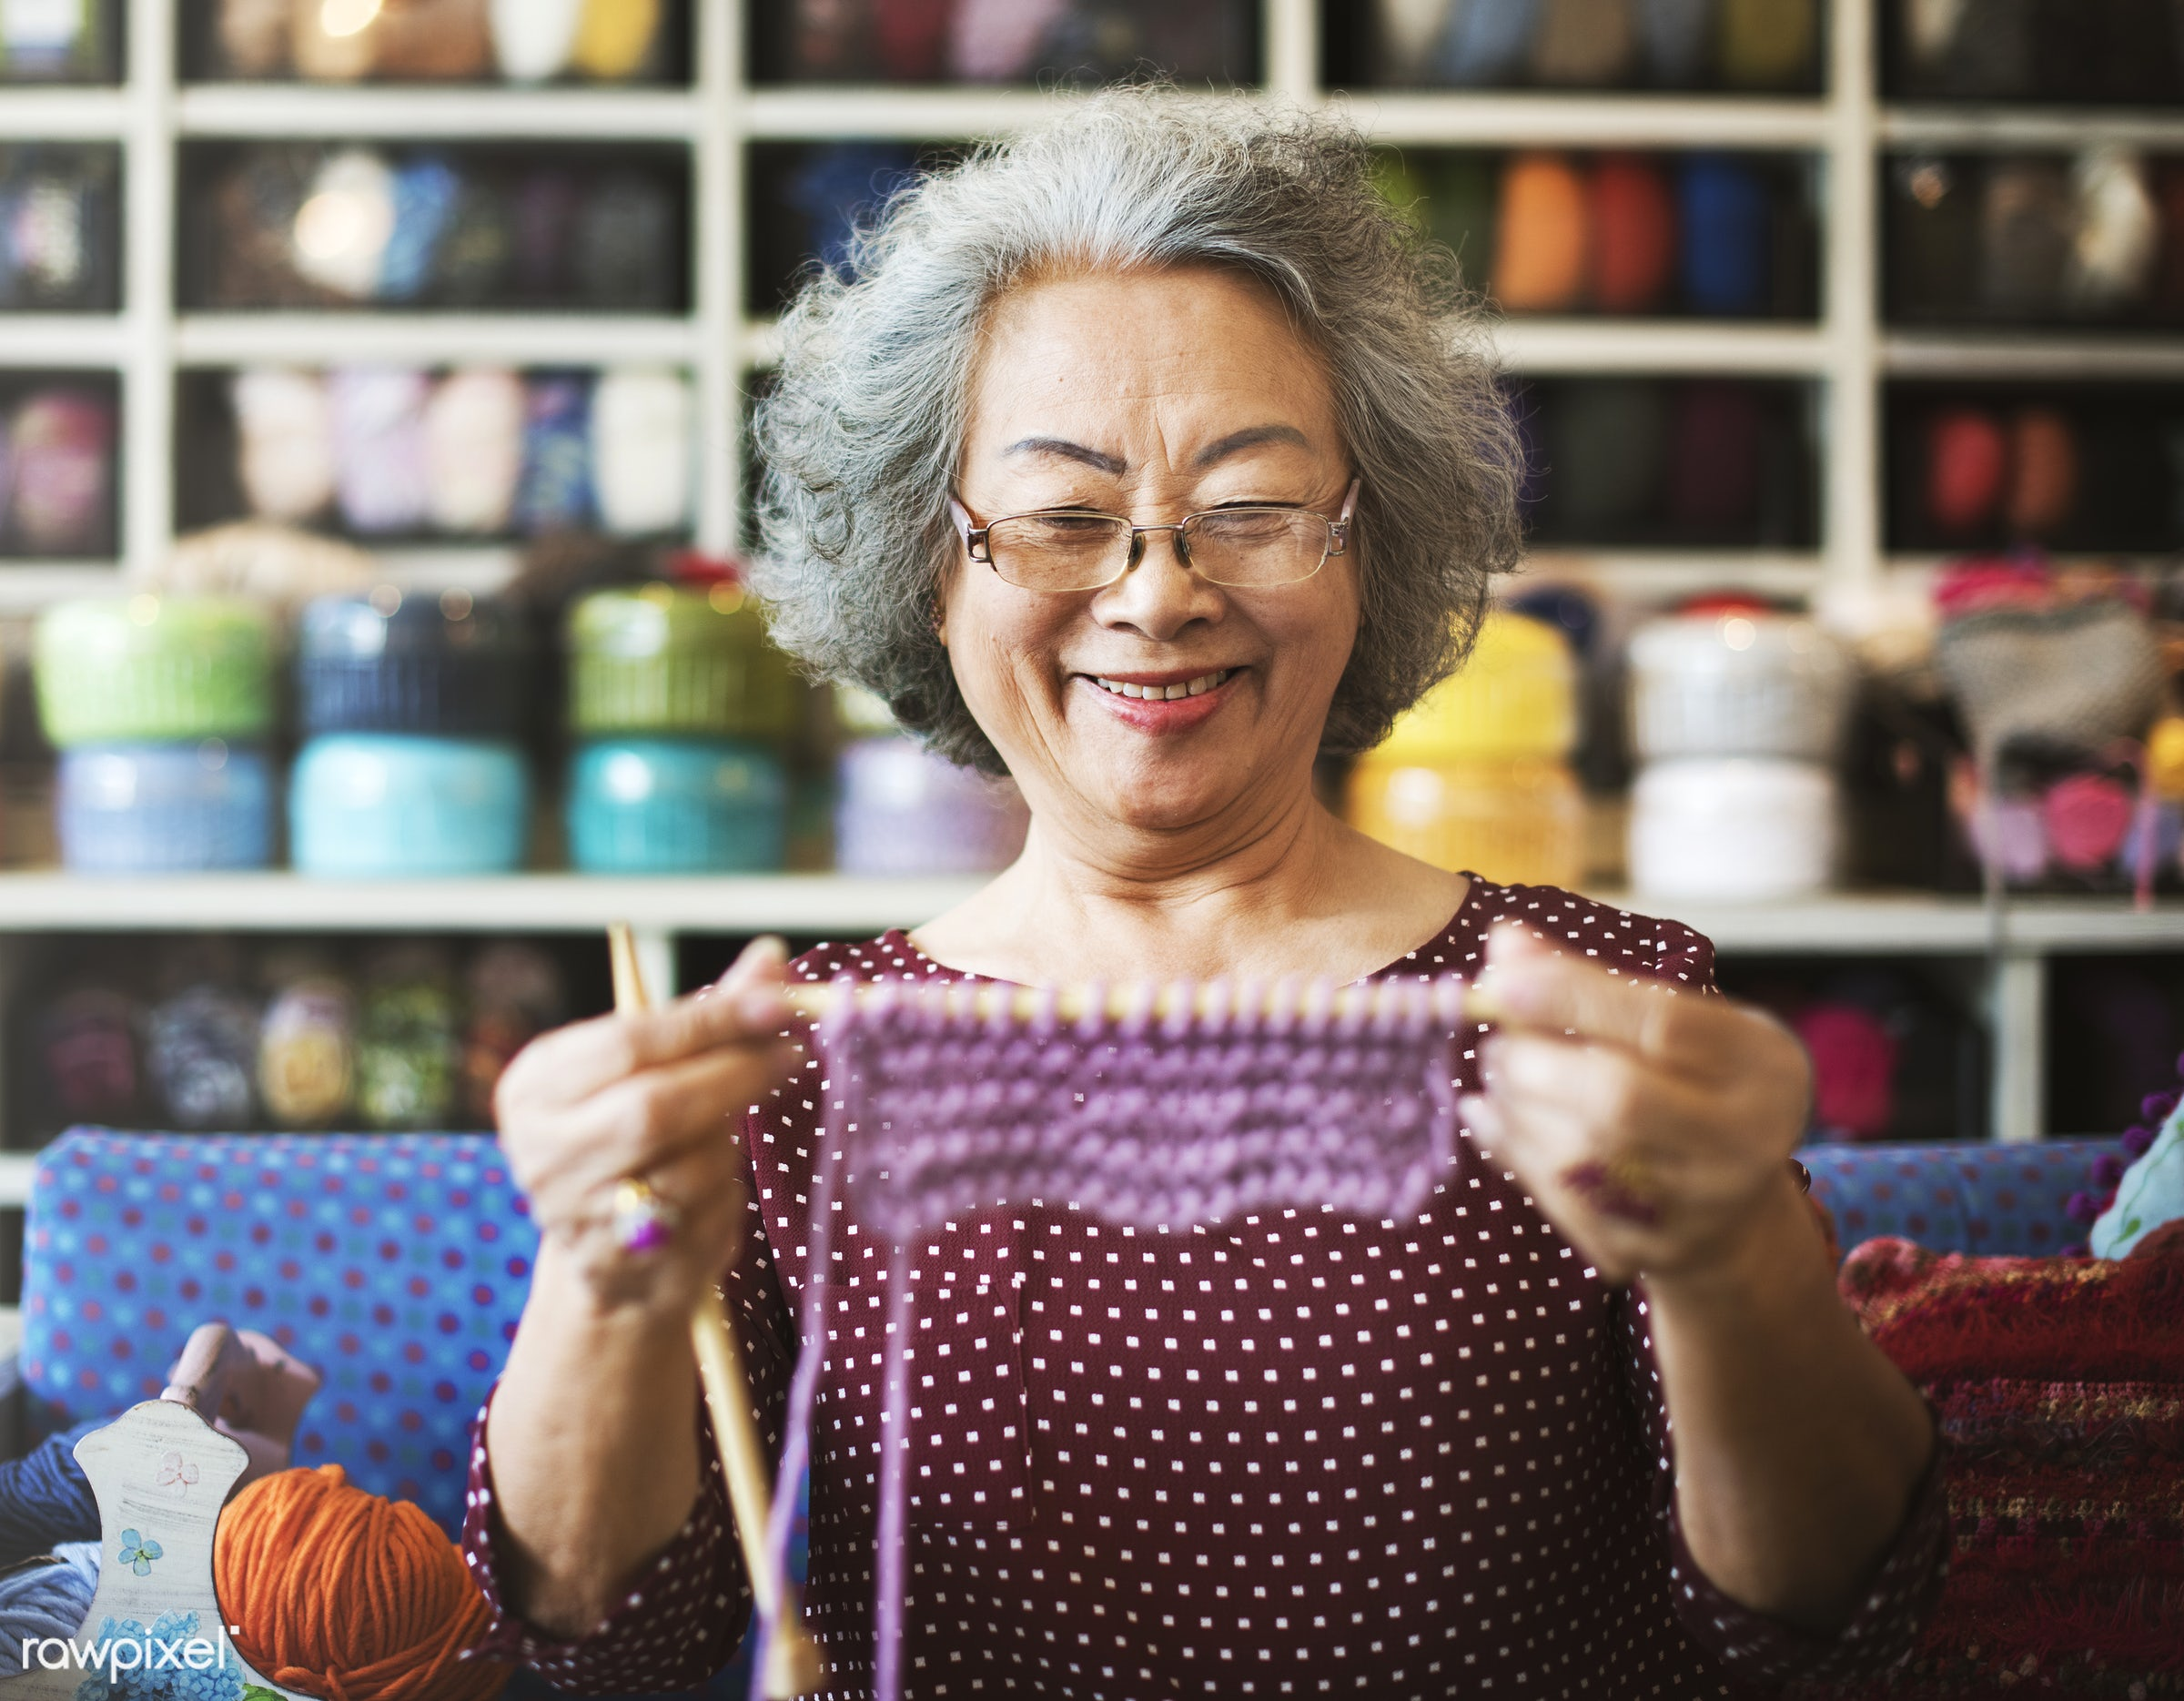 activity, art, artistic, asian, asian ethnicity, cheerful, clothing, creative, creativity, crochet, crocheting, elderly, fun...